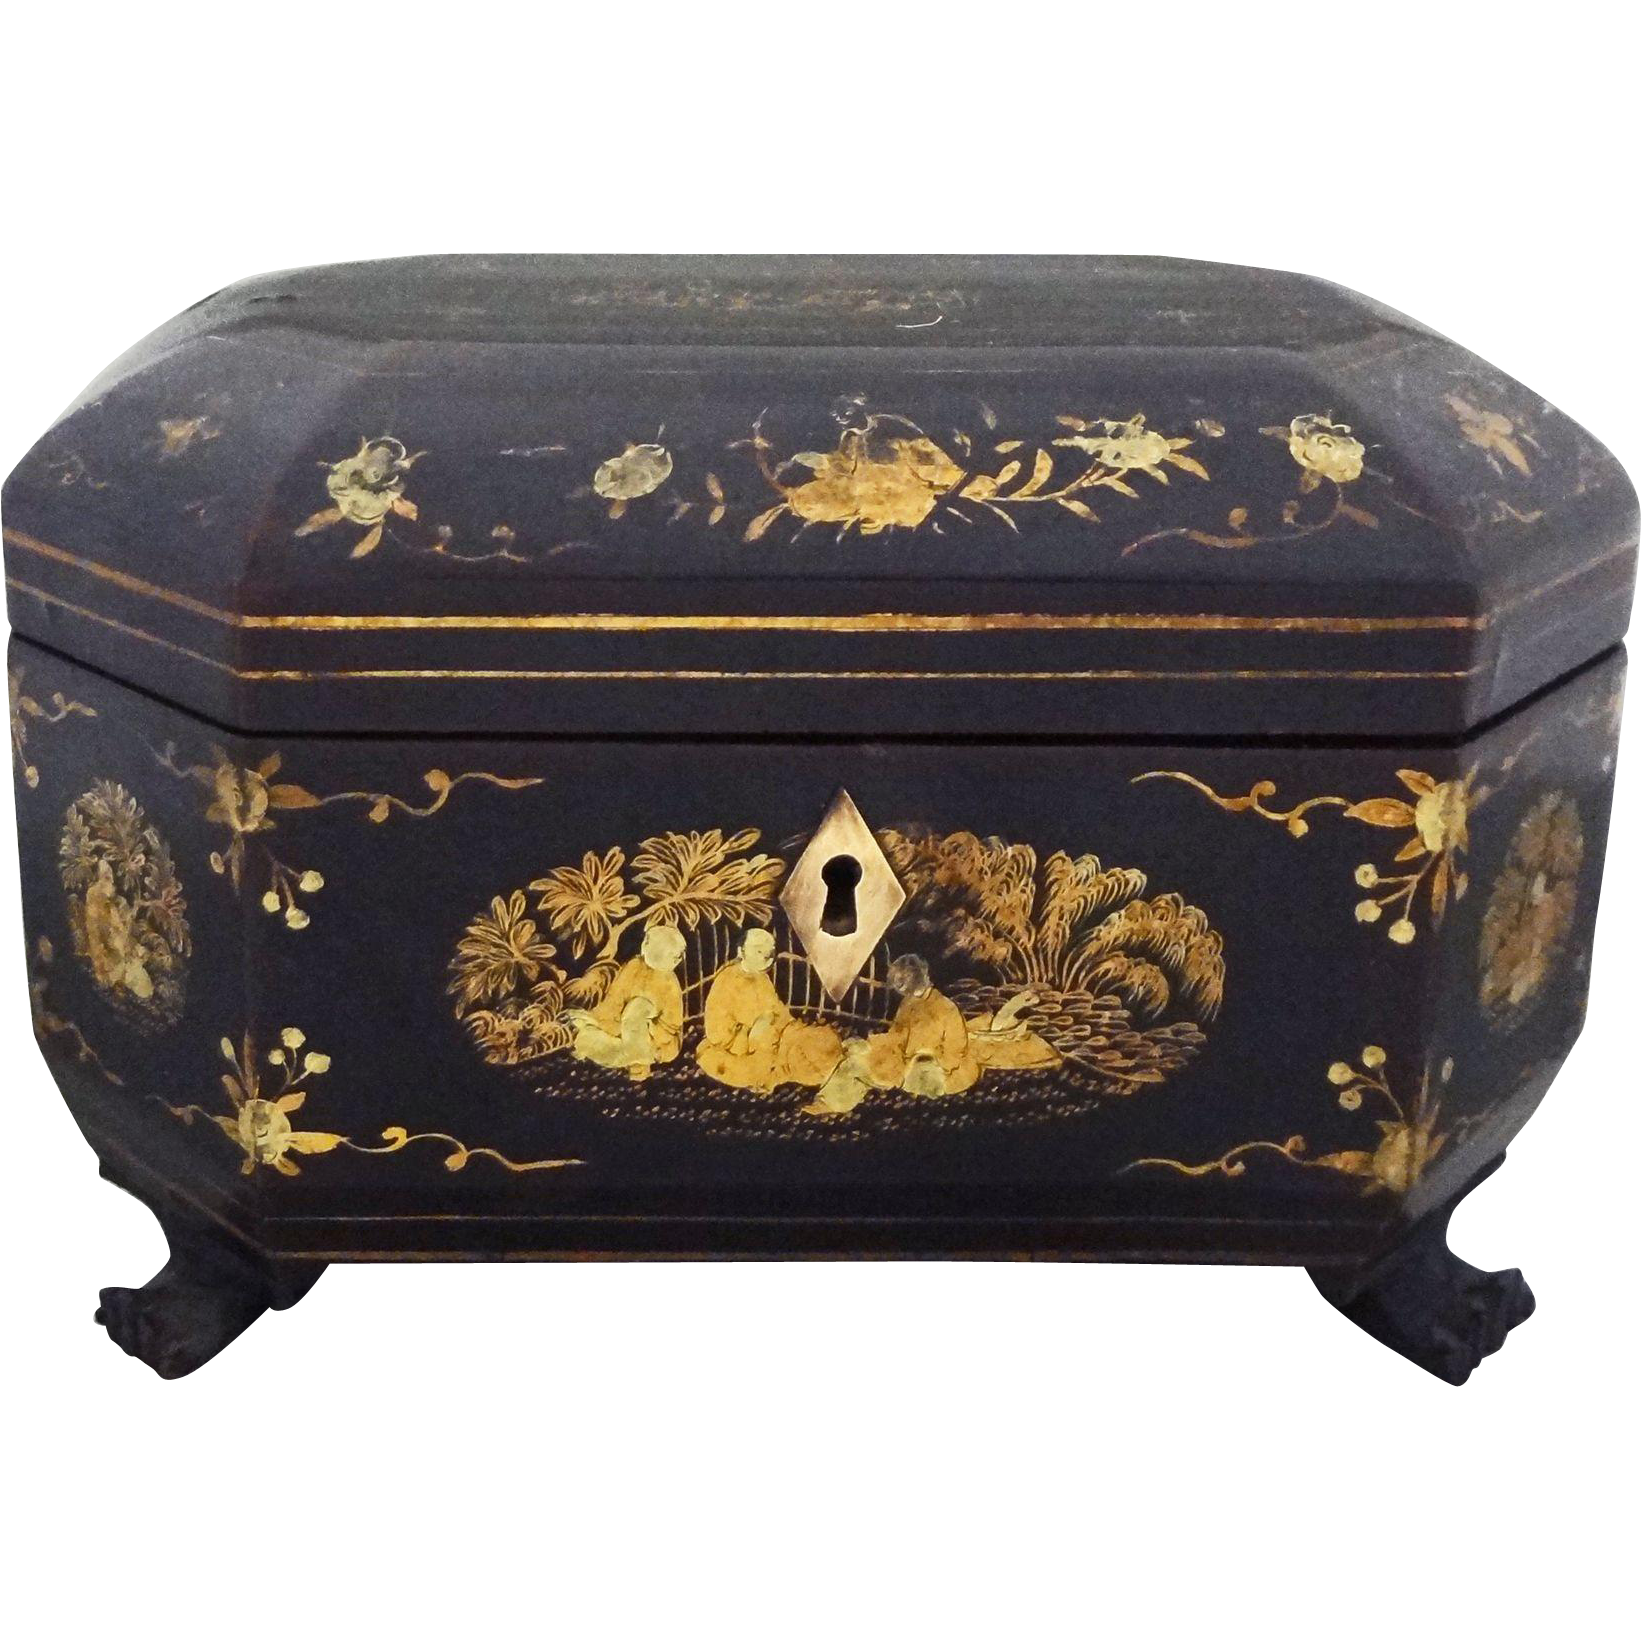 Black Lacquer Tea Caddy Box Gilt Chinese - 19th Century, China